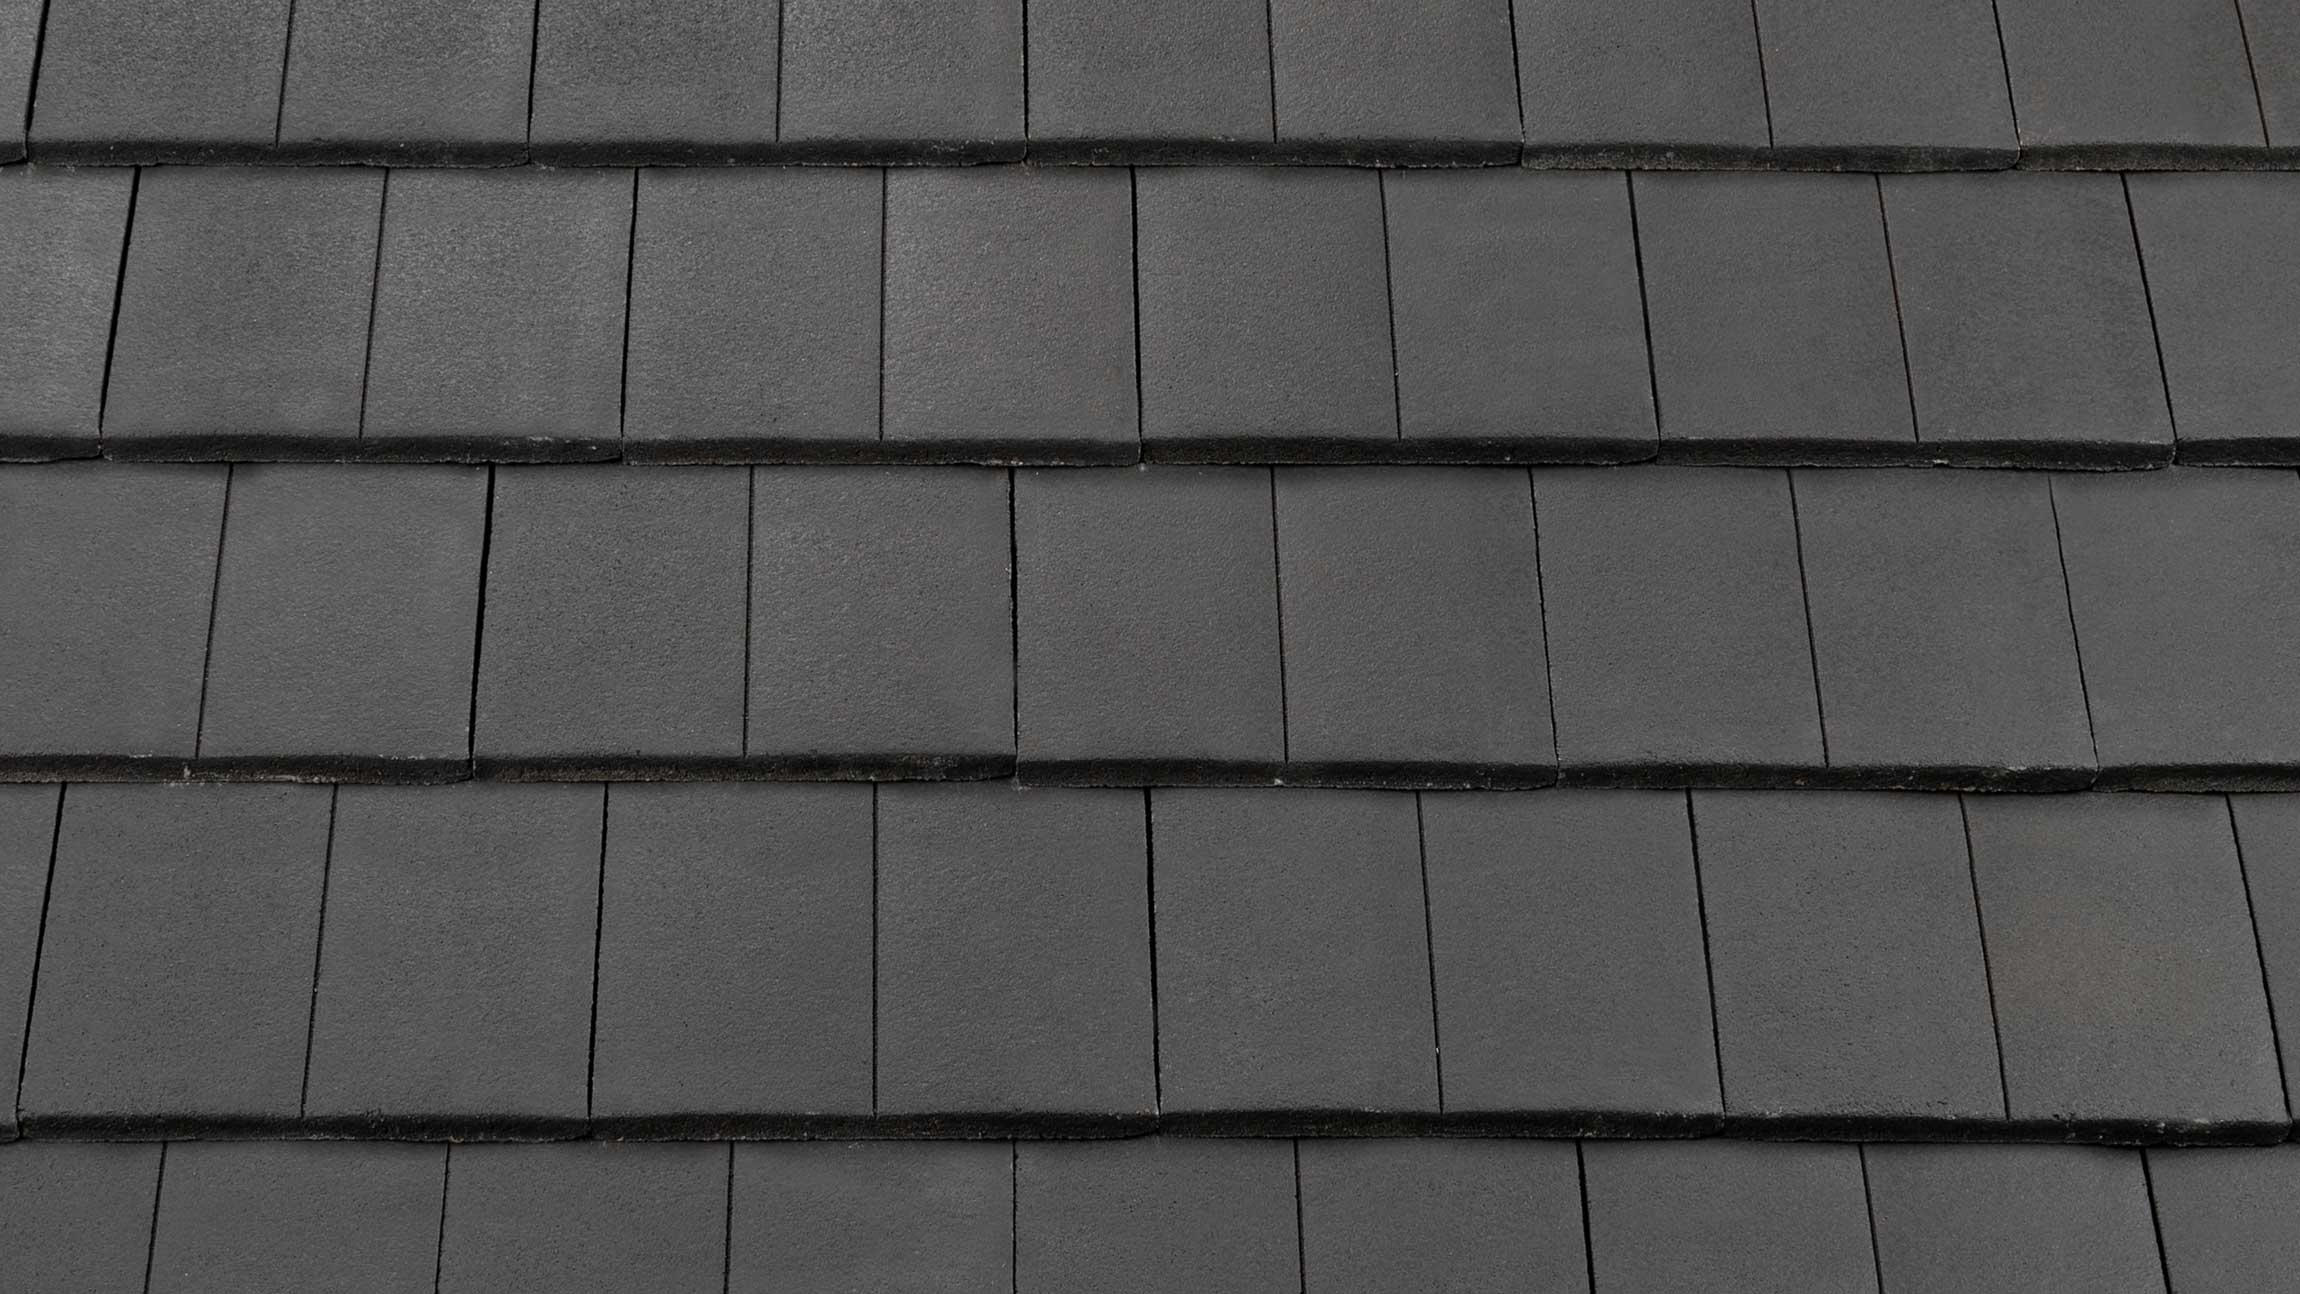 Roofing Products Redland Plain Concrete Tiles Jpg